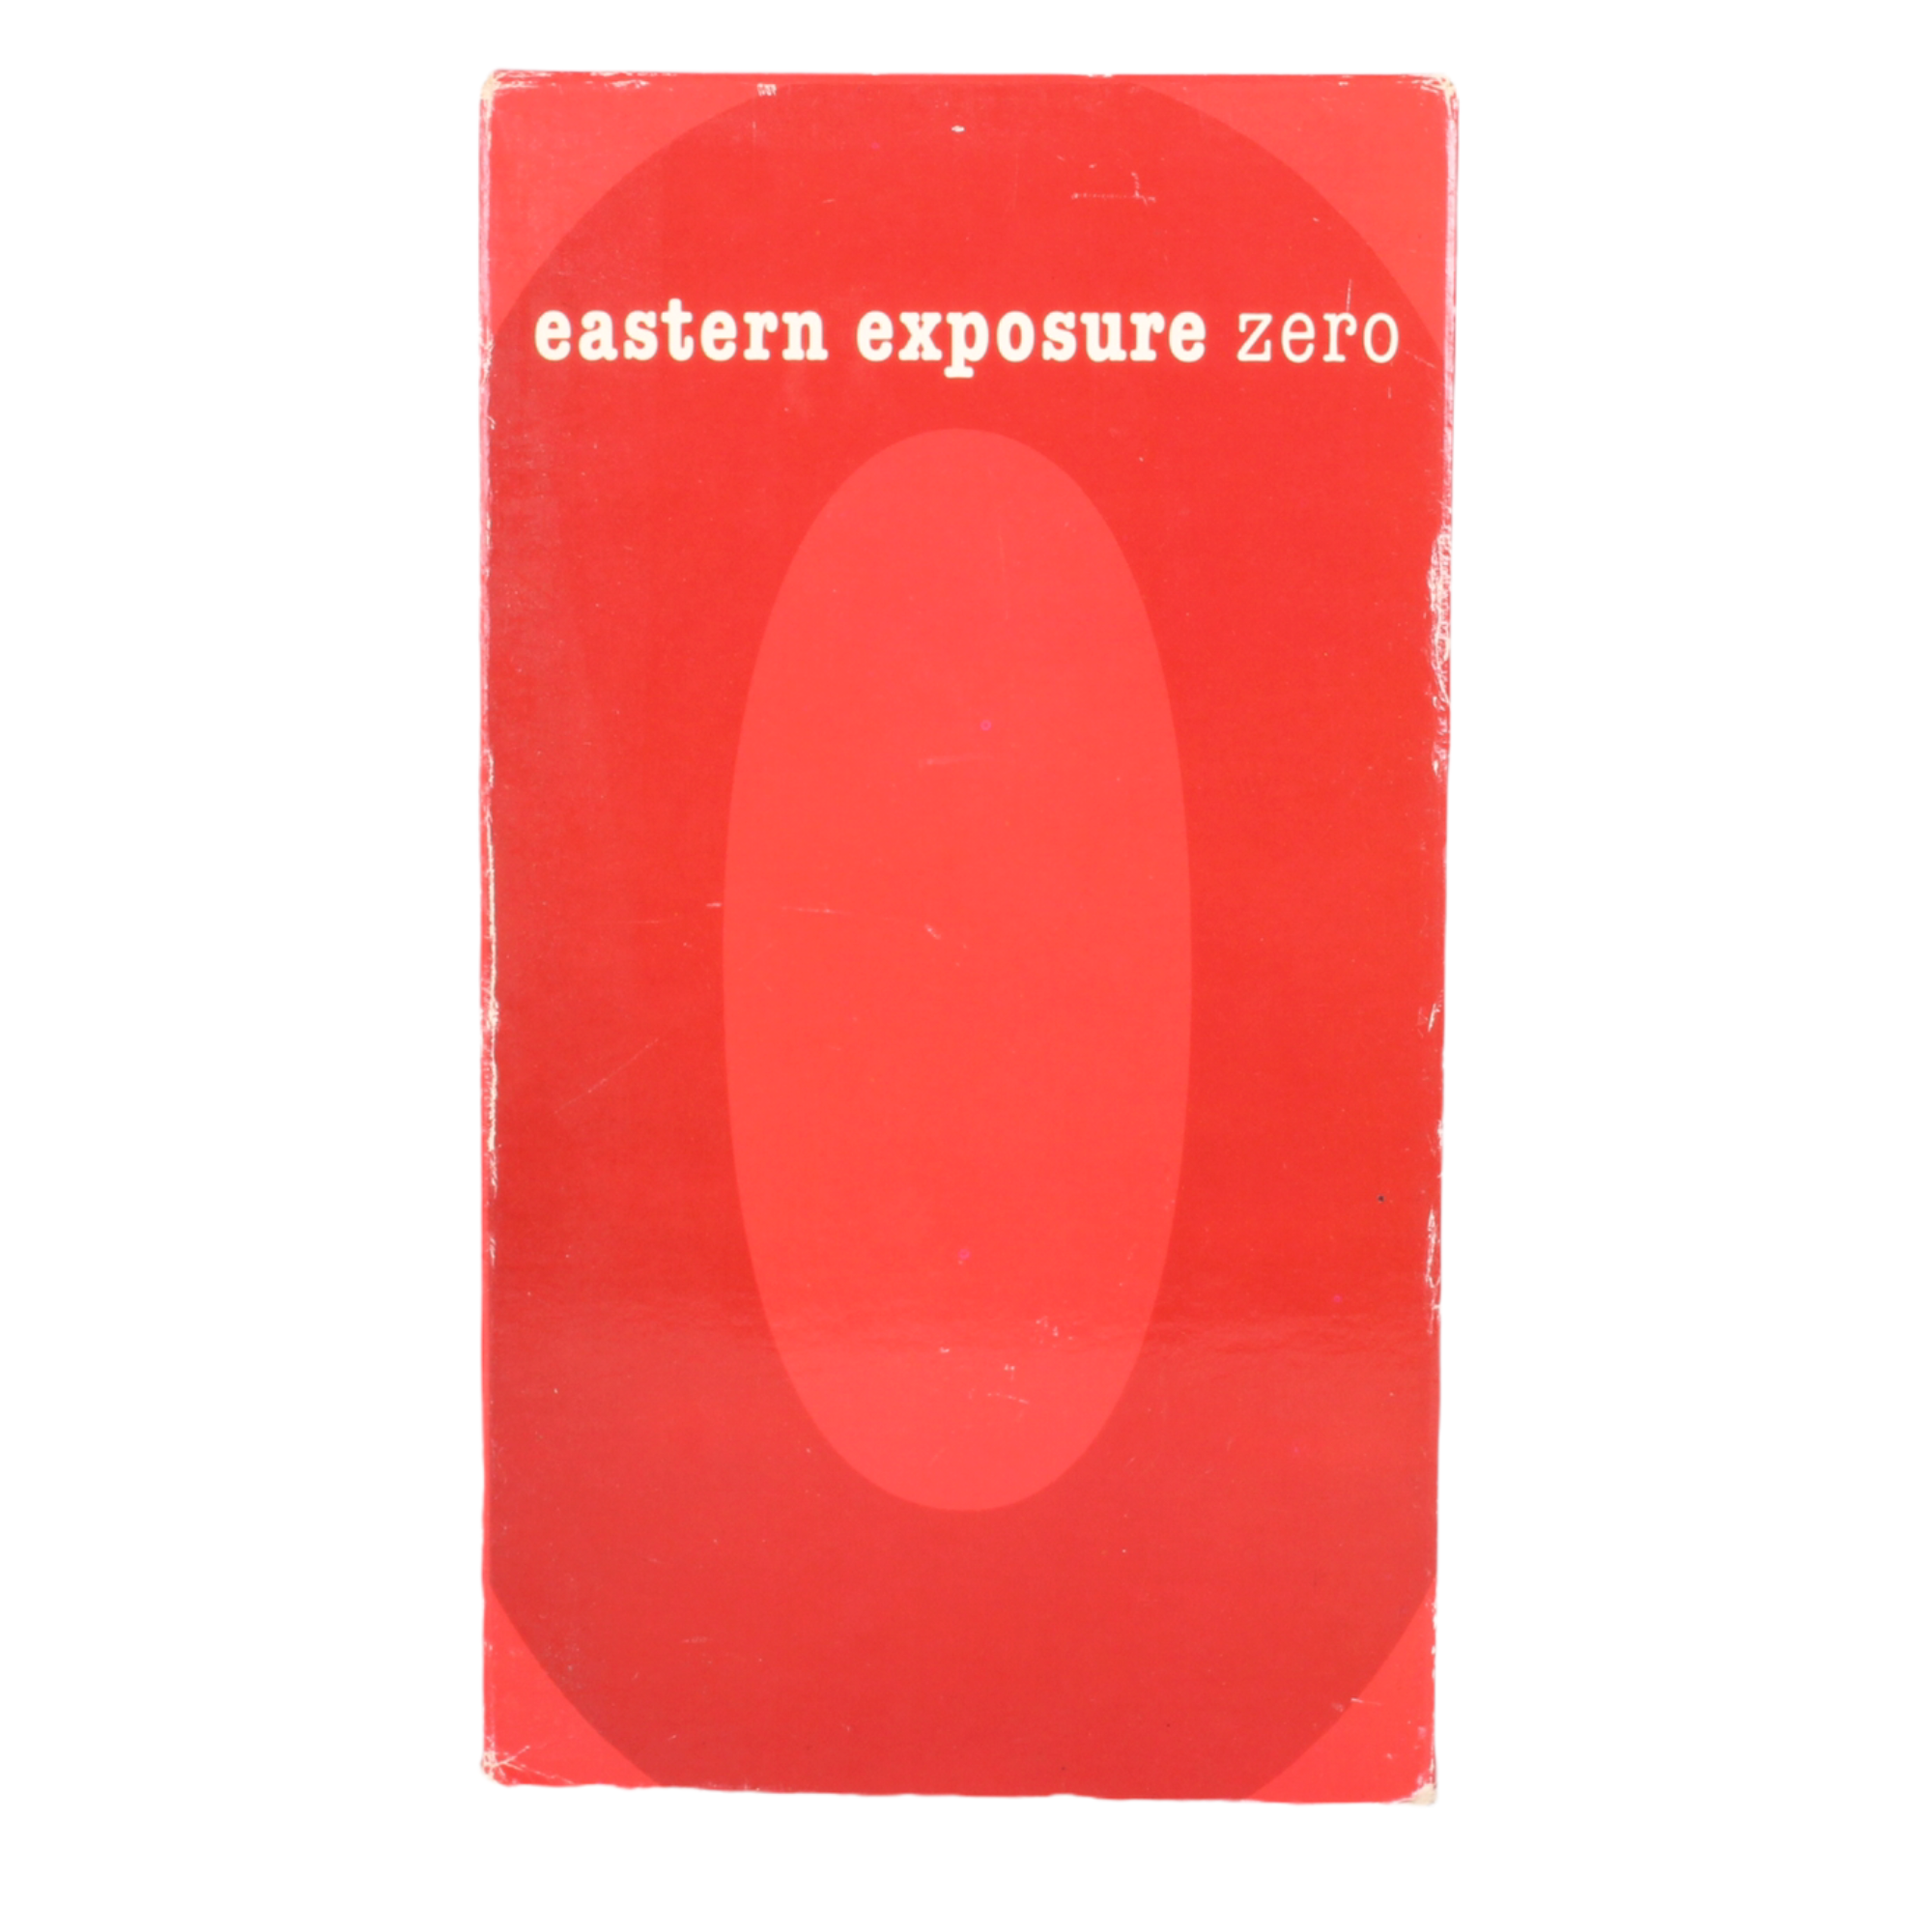 Eastern Exposure Zero VHS (1996)